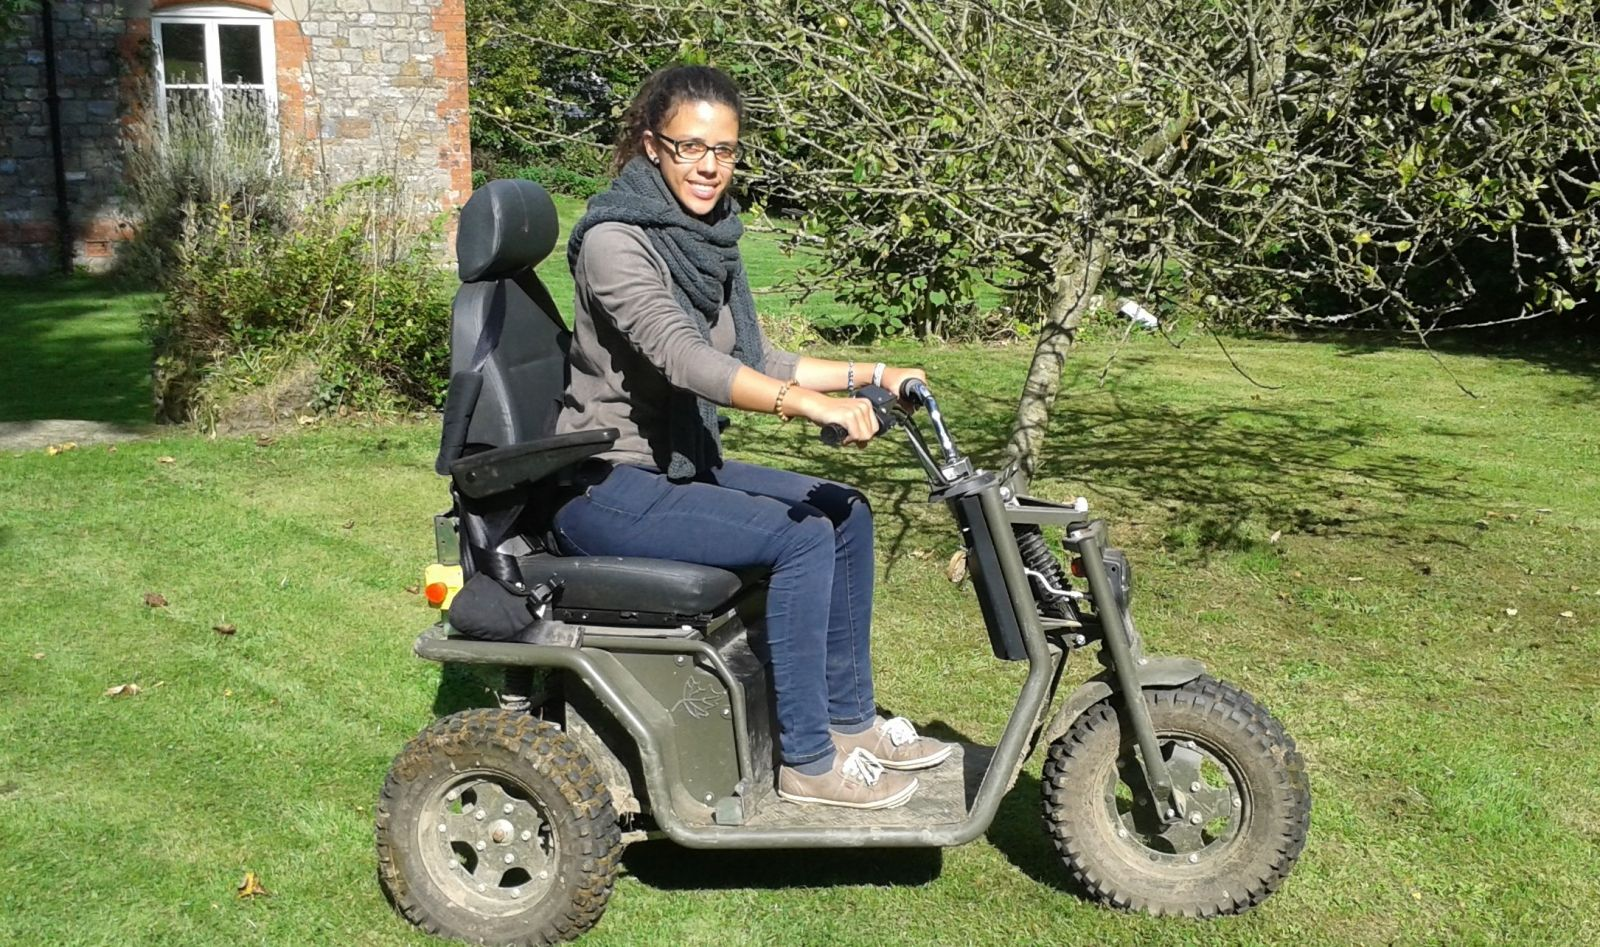 Tramper for accessibility at Magdalen Farm